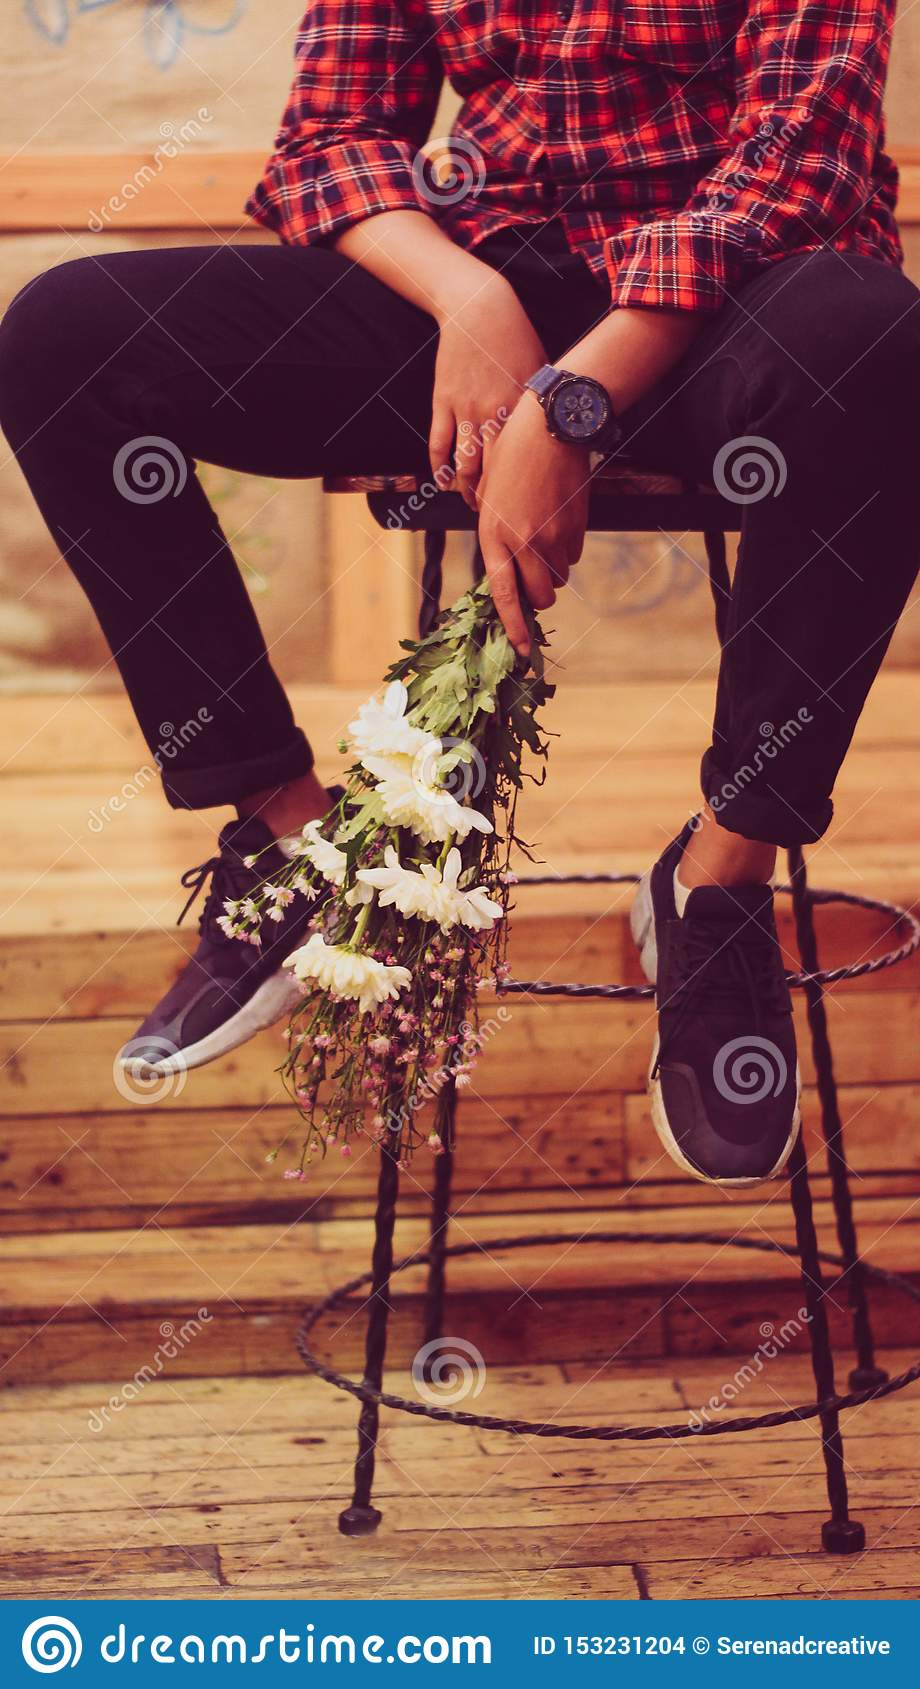 A girl holding a flower boquet on the chair in a coffee shop